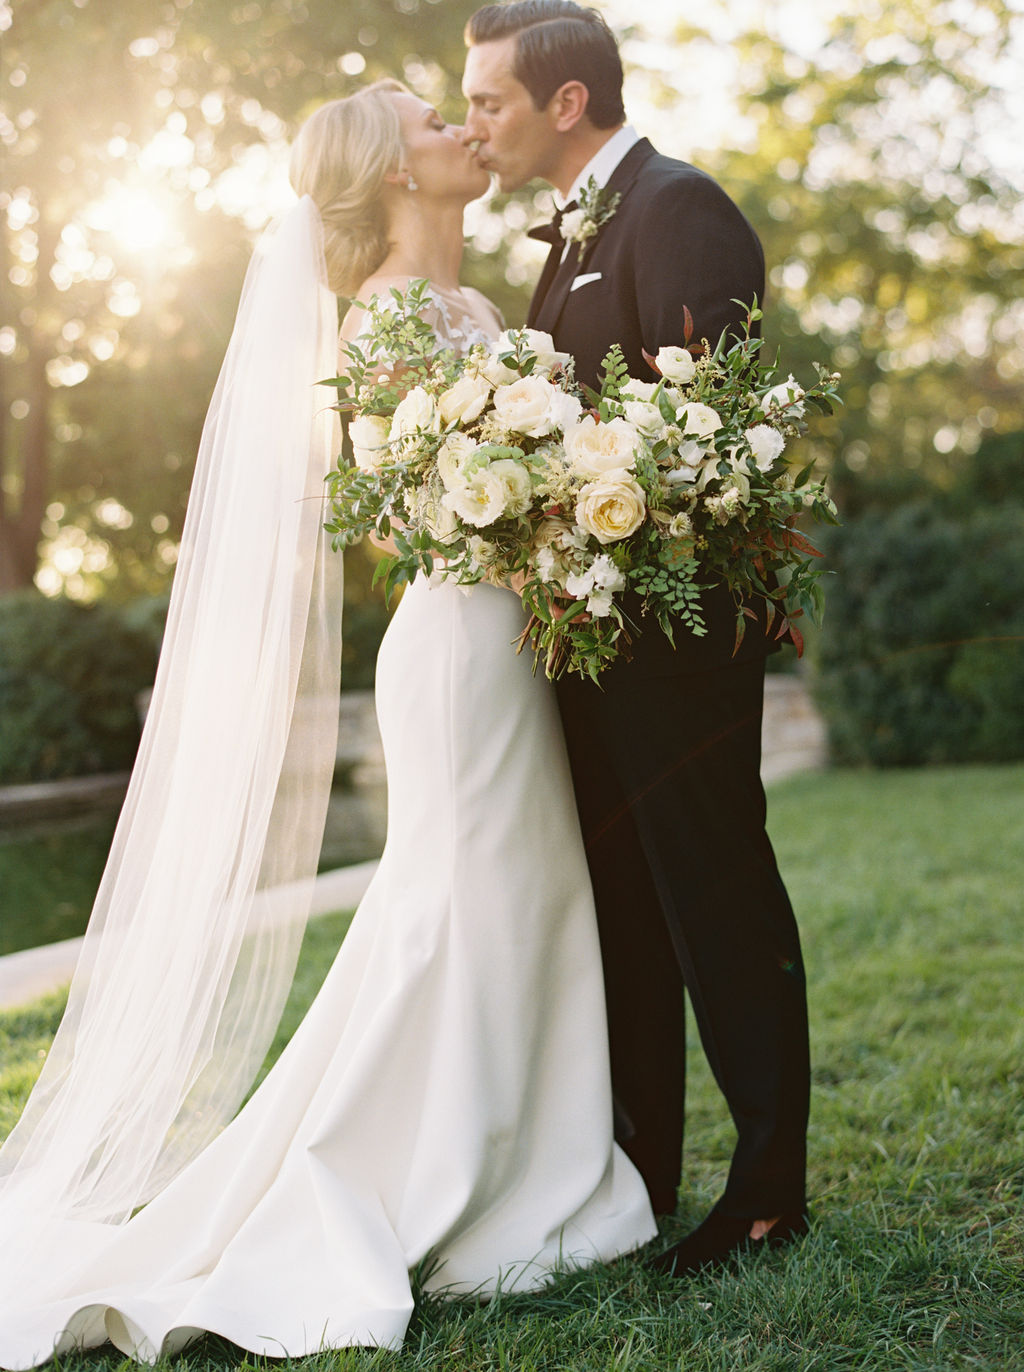 Rachel Gregory Lush White Wedding Florals At Cheekwood Botanic Gardens Rosemary Finch Floral Design Nashville Tn